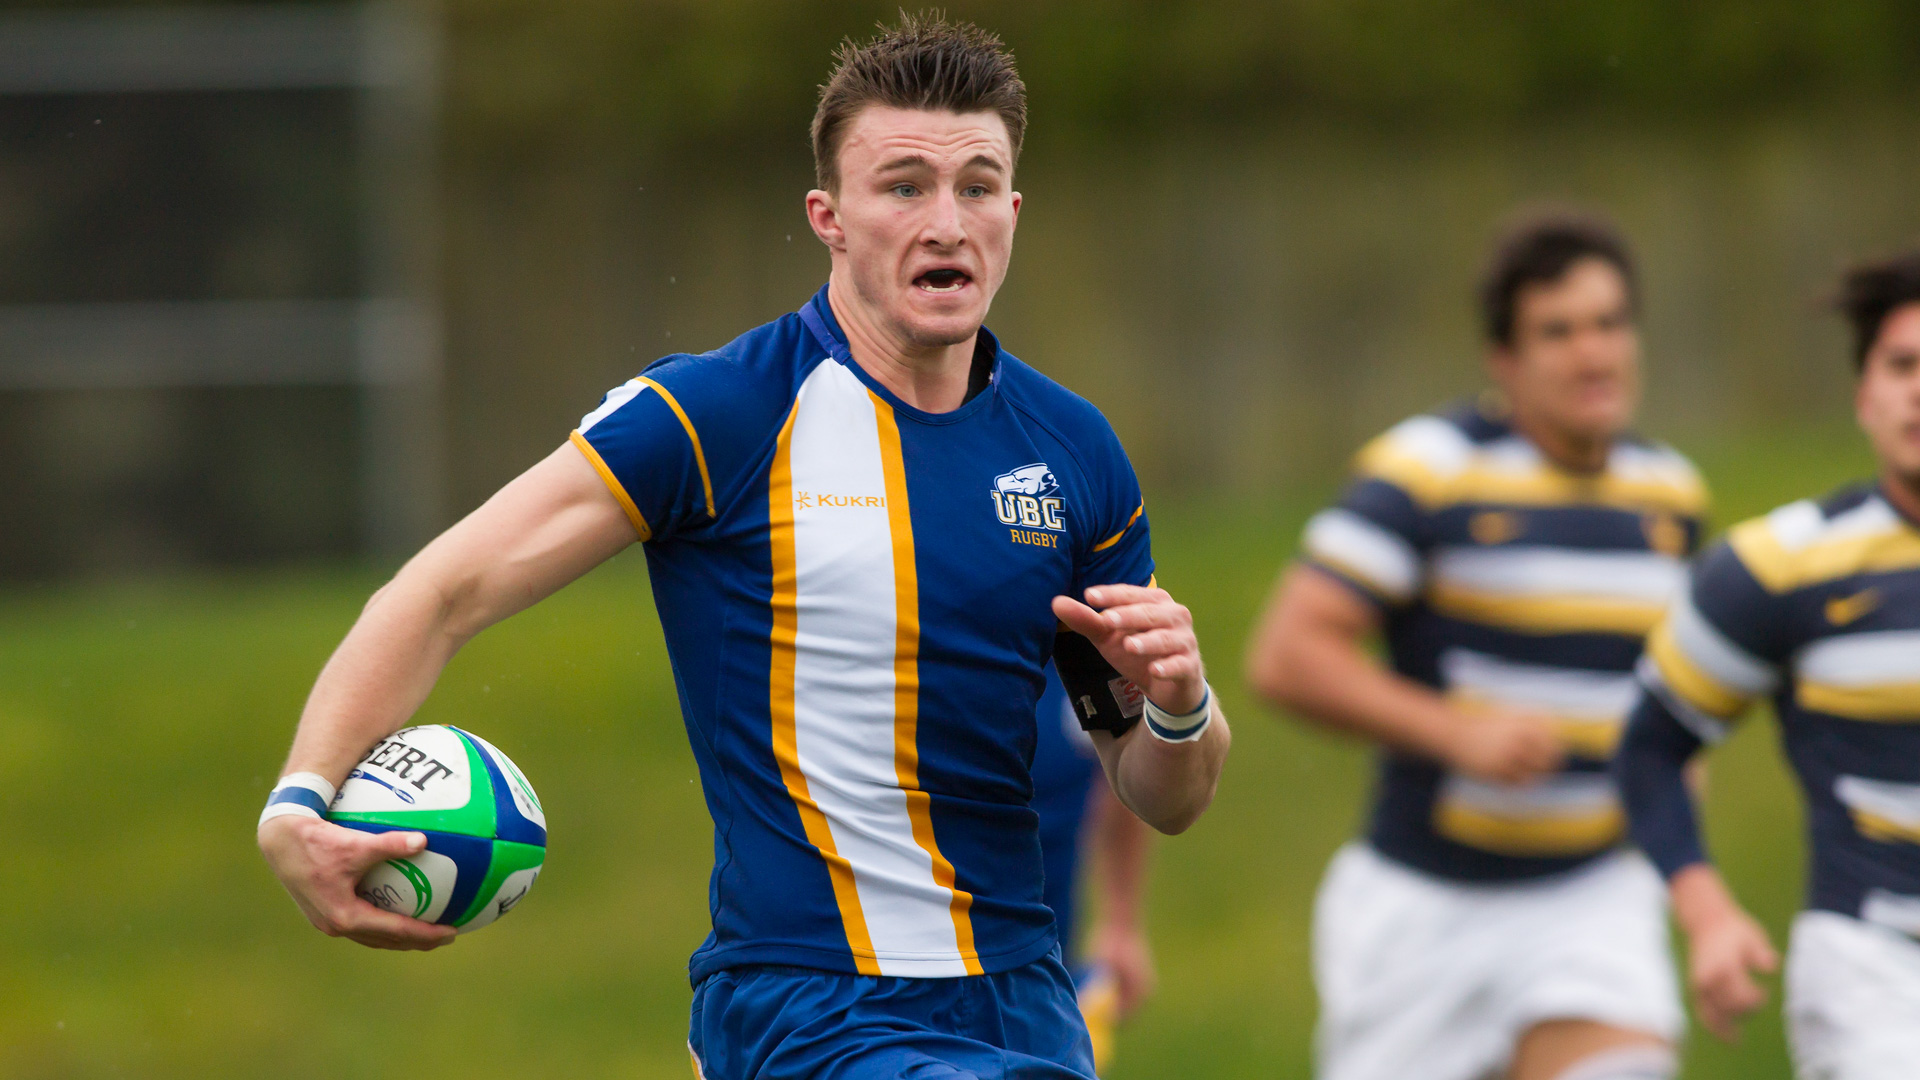 T-Birds alums Phil Berna, Andrew Coe, Harry Jones and Theo Sauder were included in the Team Canada Sevens roster.